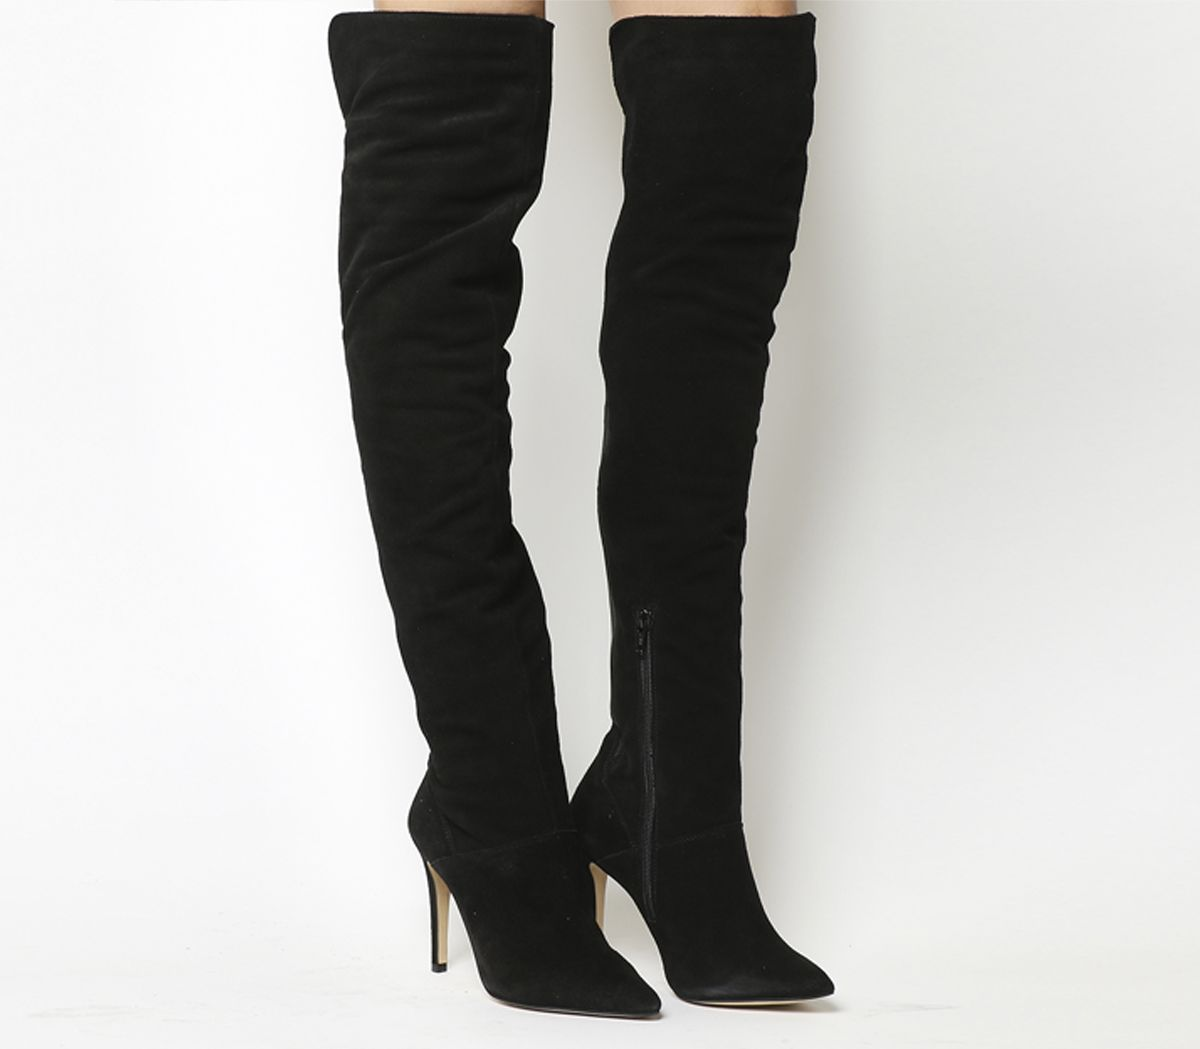 723912d3444 Office Neve Over The Knee Boots Black Suede - Knee Boots